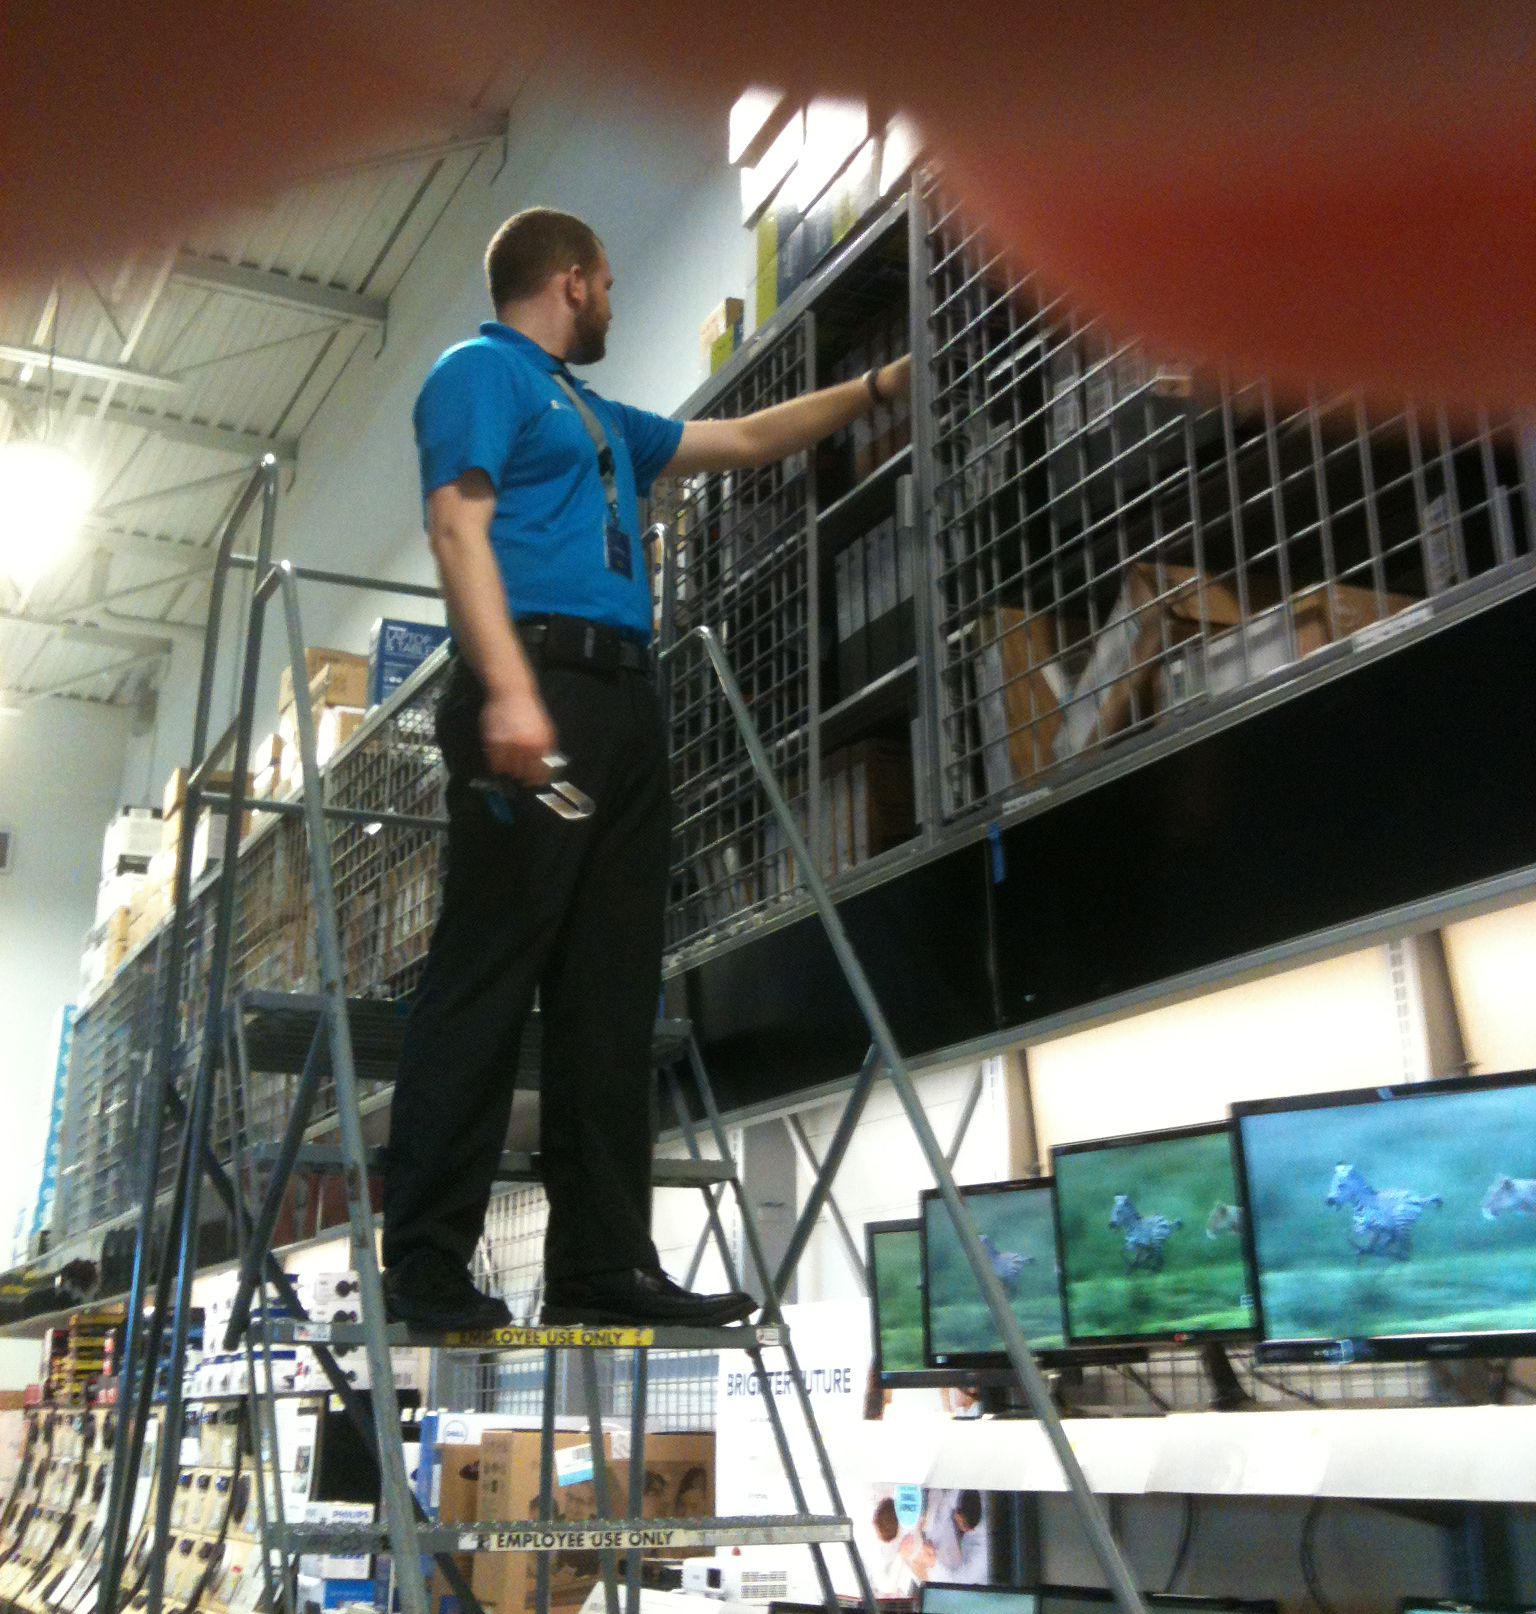 Sales clerk at Best Buy store climbs ladder to pull down a new Toshiba laptop for a customer. Photo by BF Newhall